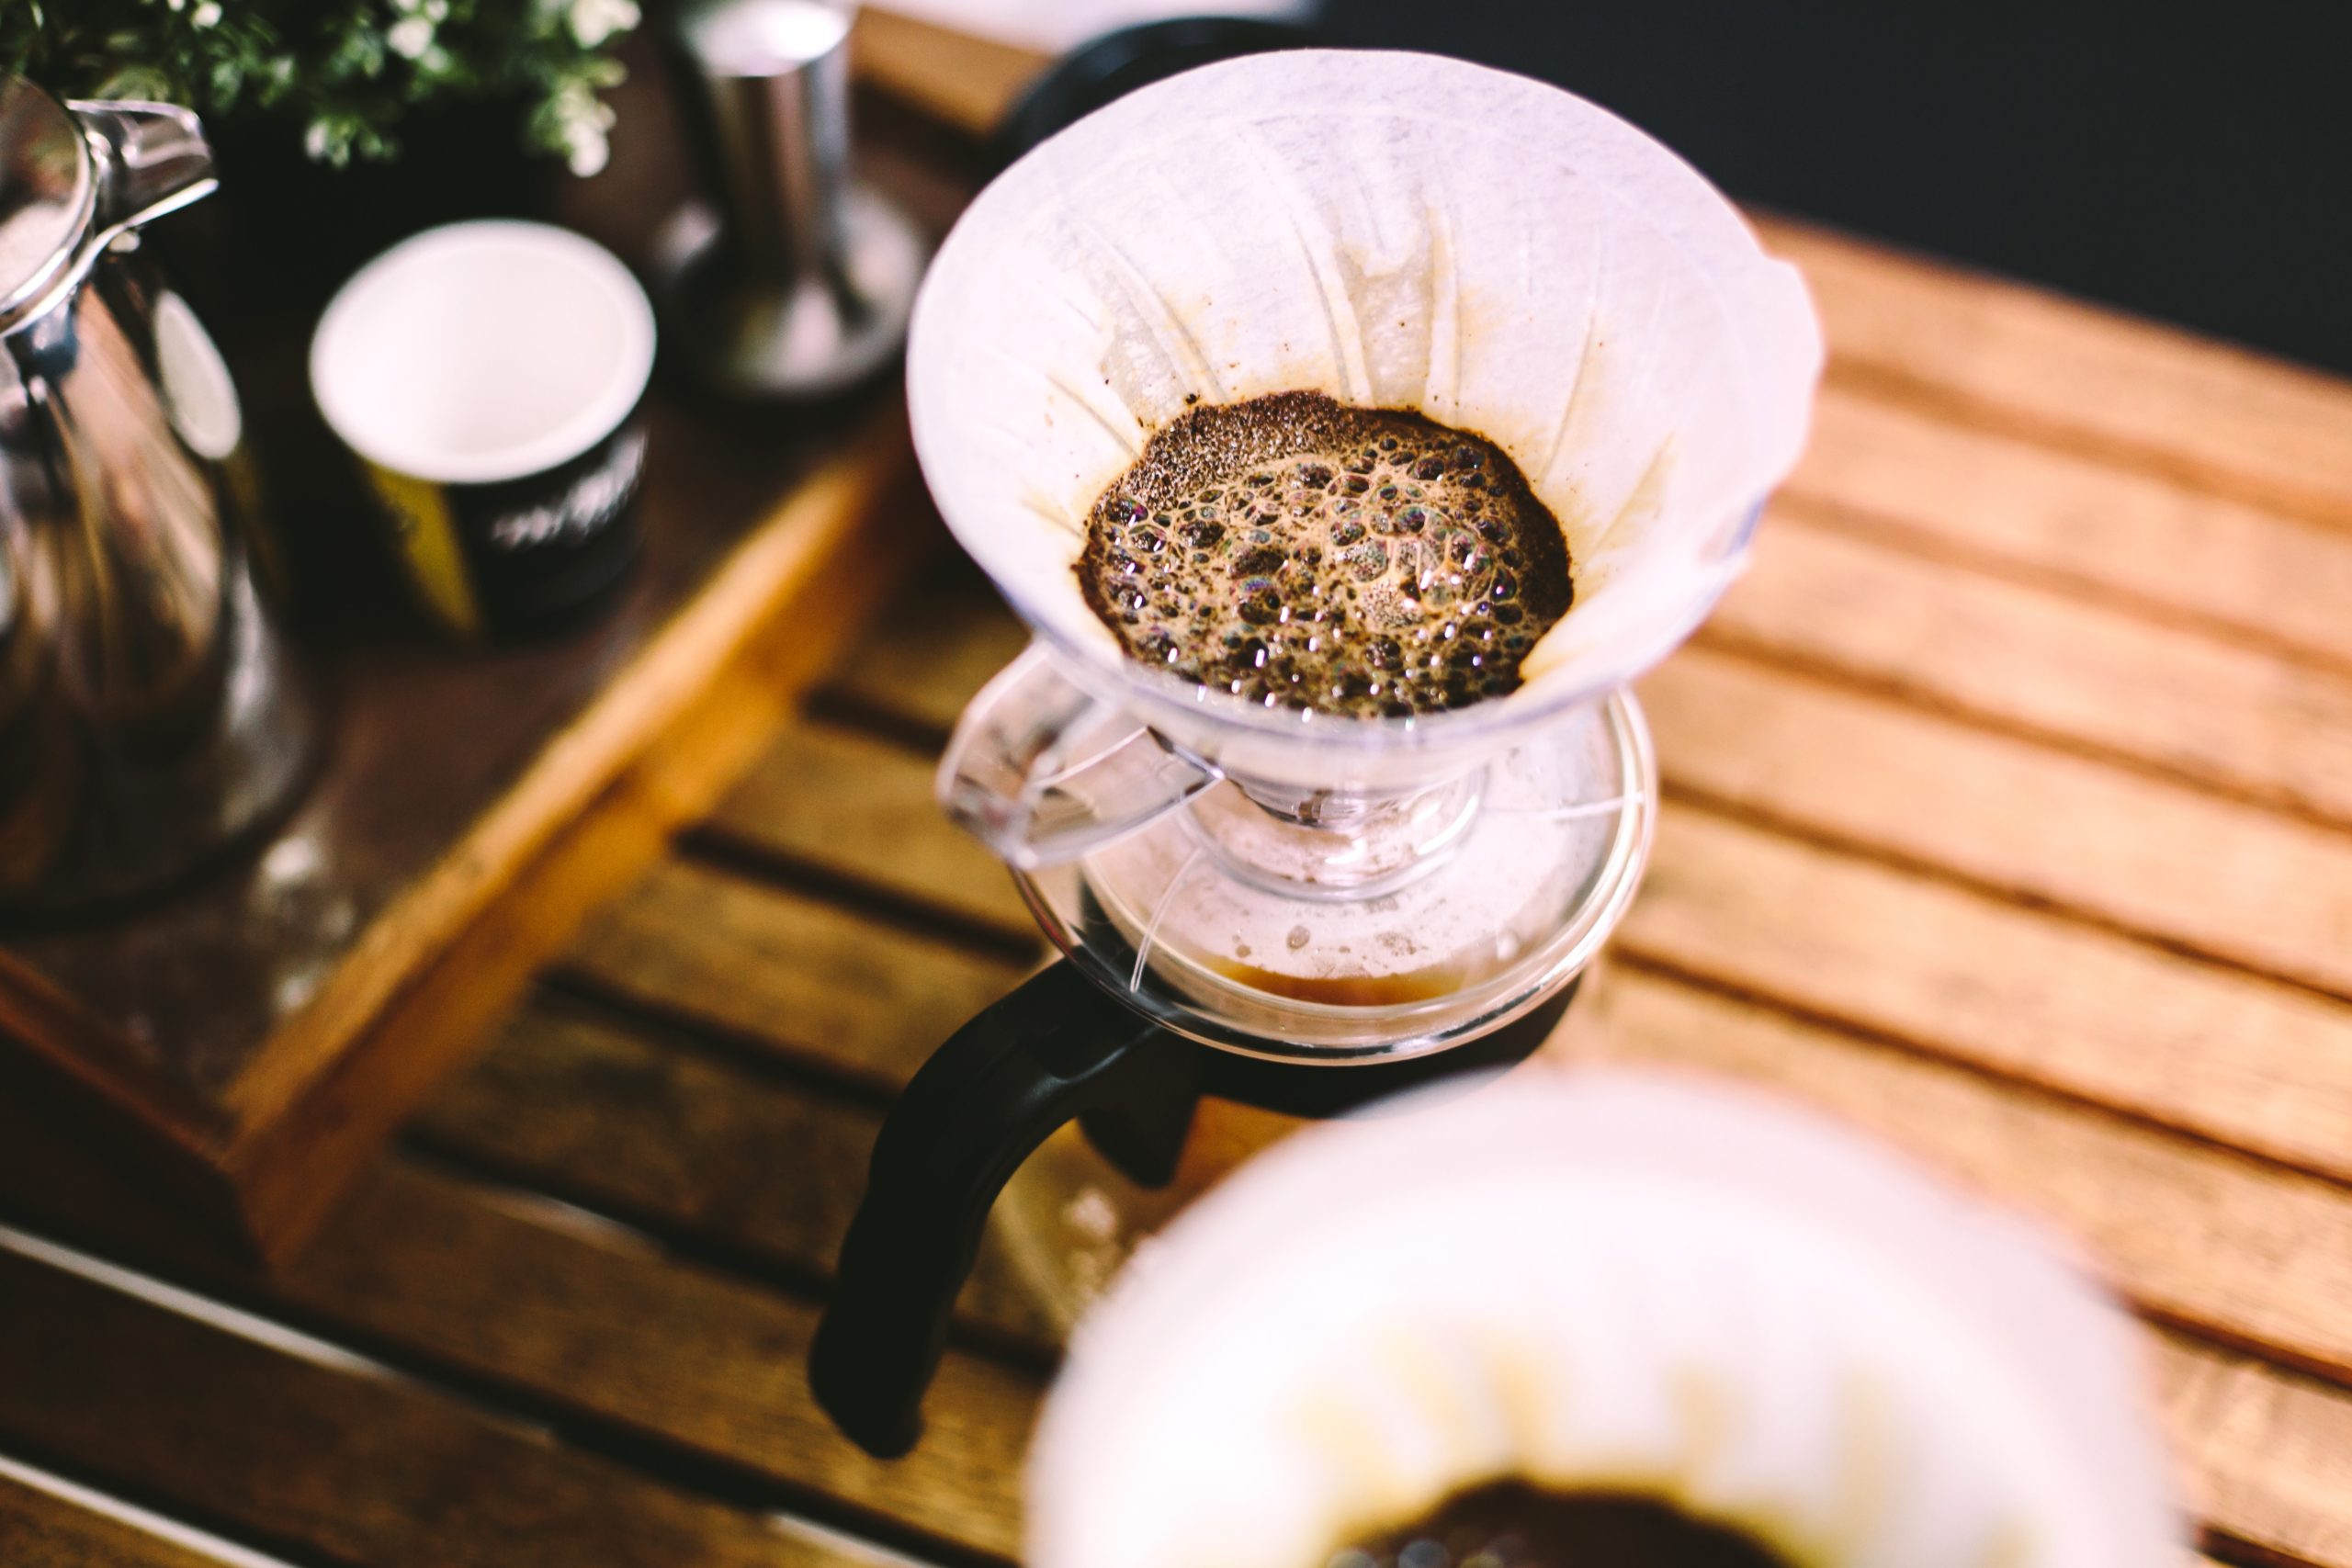 coffee being brewed in a drip coffee